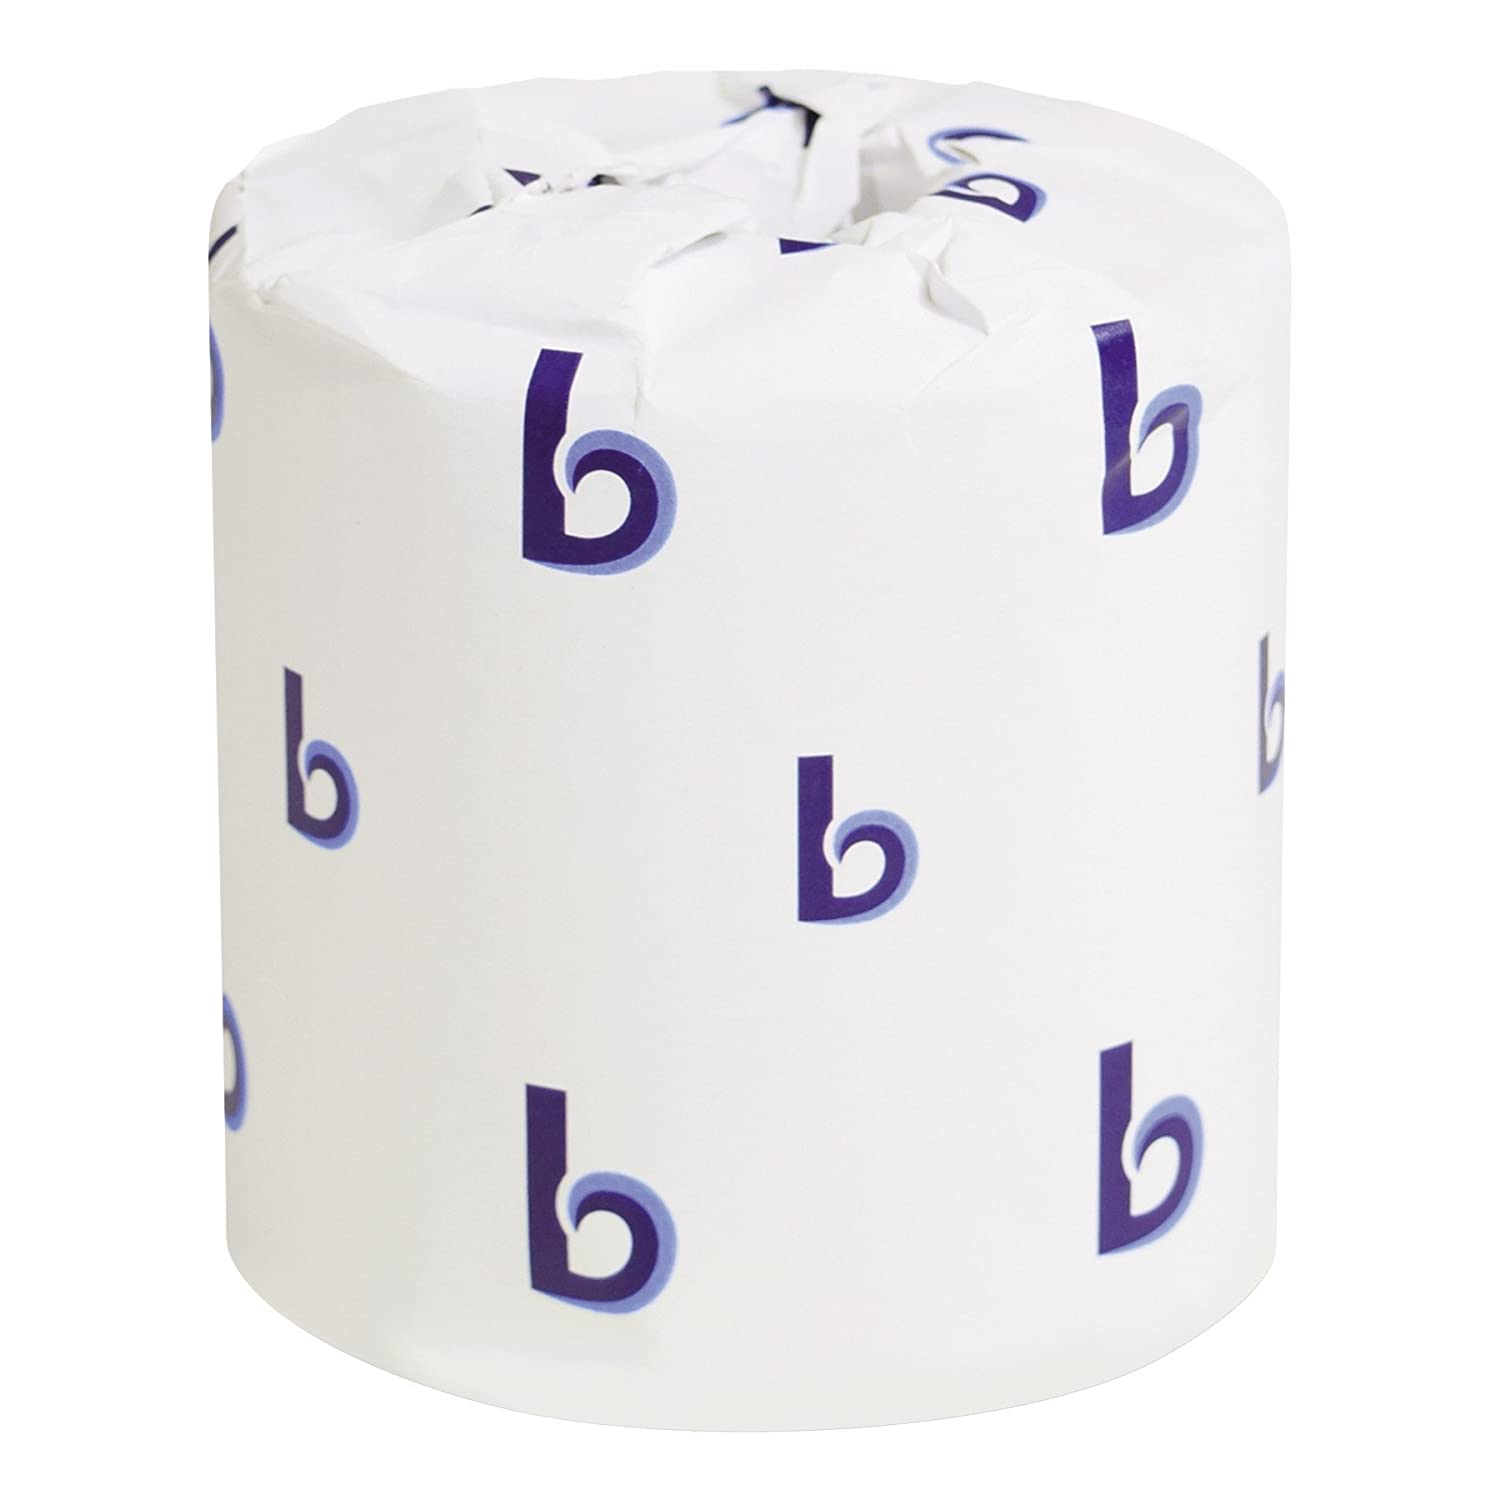 Boardwalk 6170 One-Ply Toilet Tissue Sheets, White, 1000 Sheets per Roll (Case of 96) BWK 6170